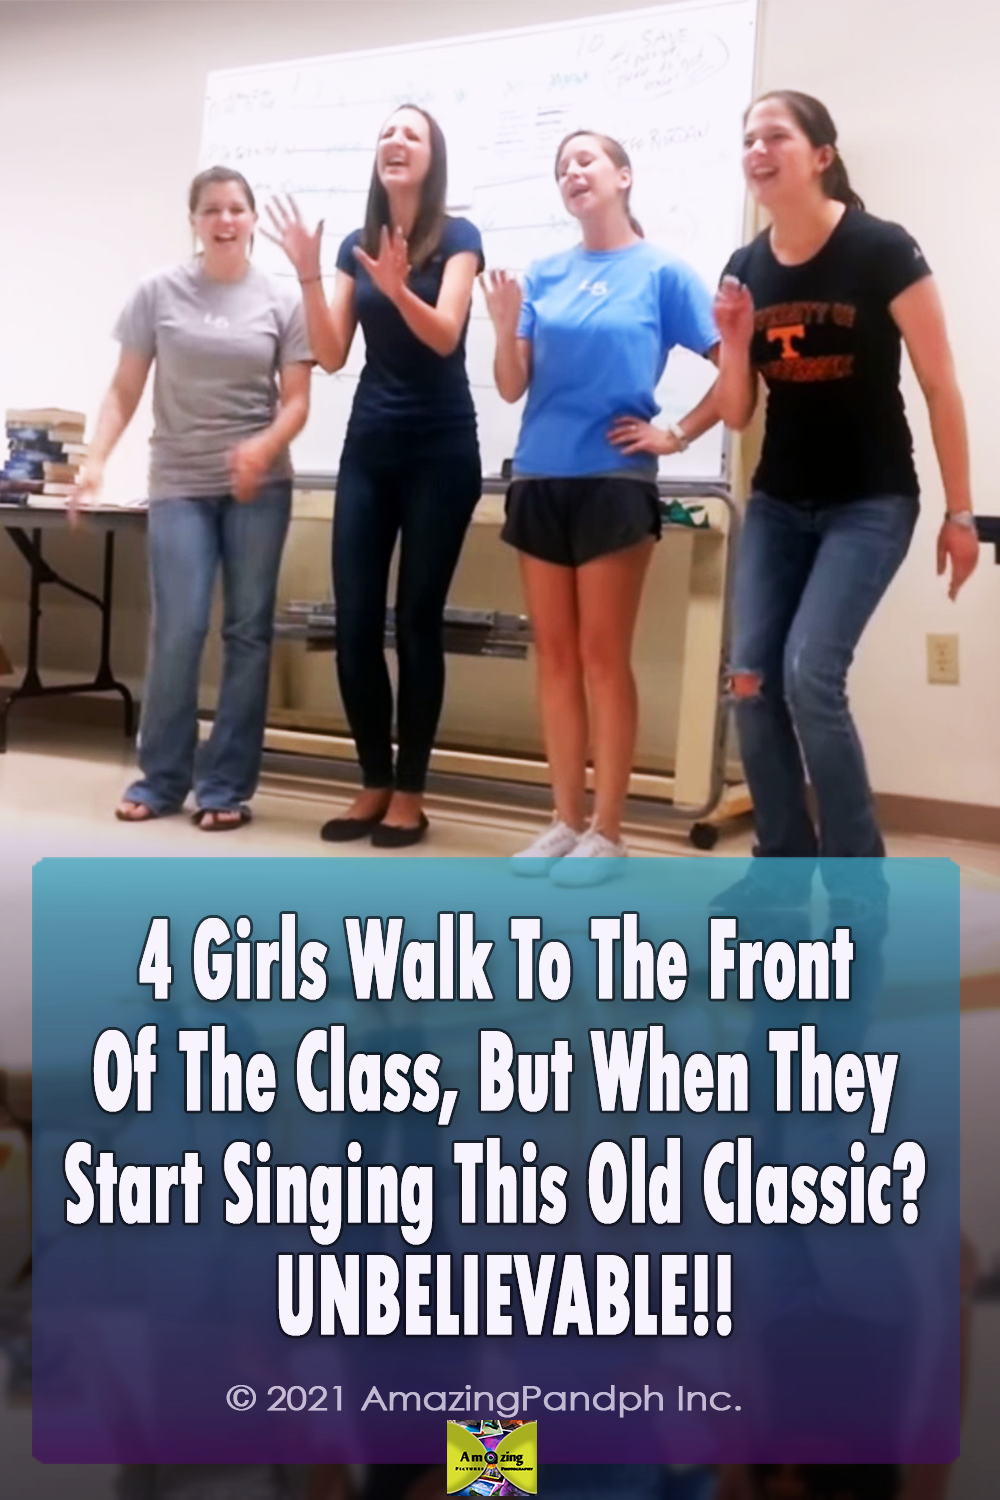 Amateur Girl Band, music band, classic, oldies, performance, talent, voice,